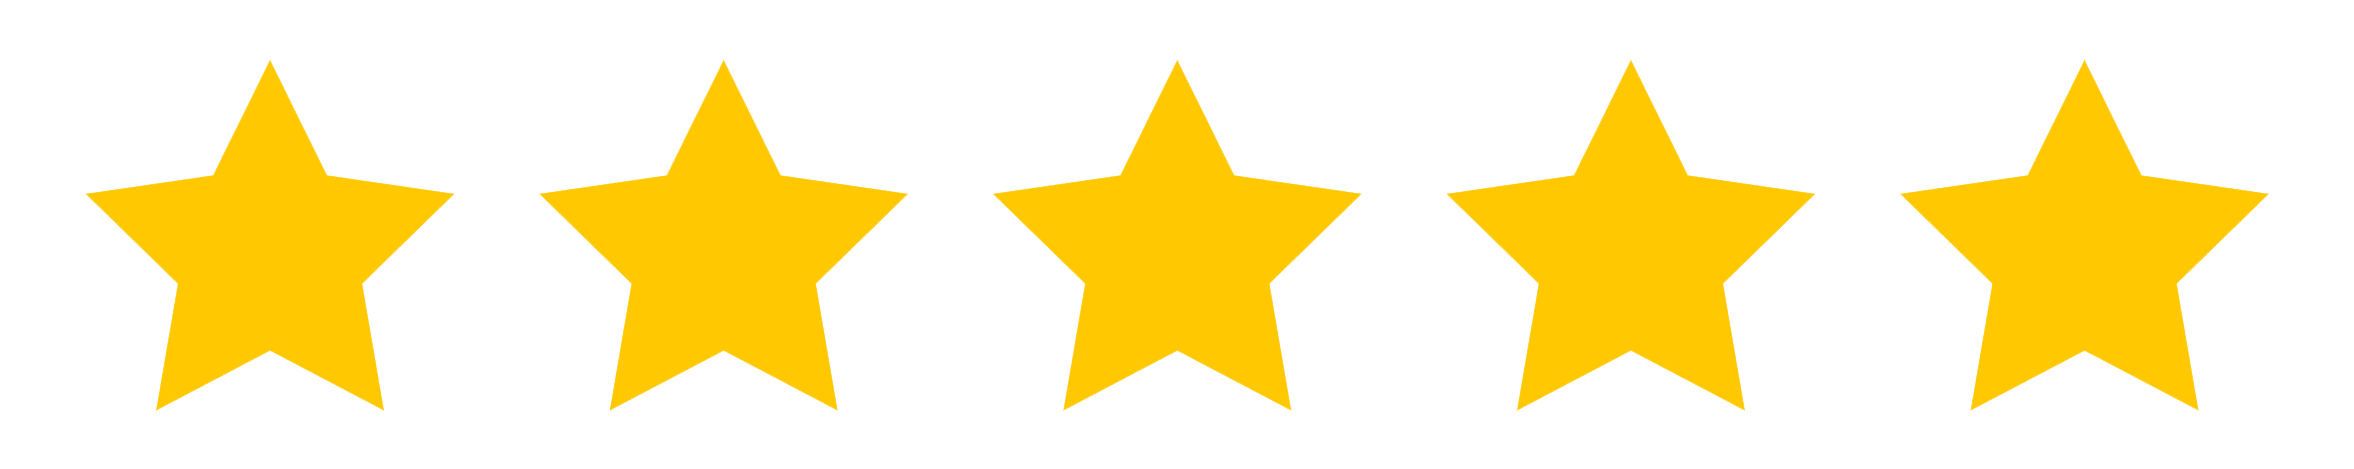 Reviews star rating for A-1 Self Storage in Chula Vista, California